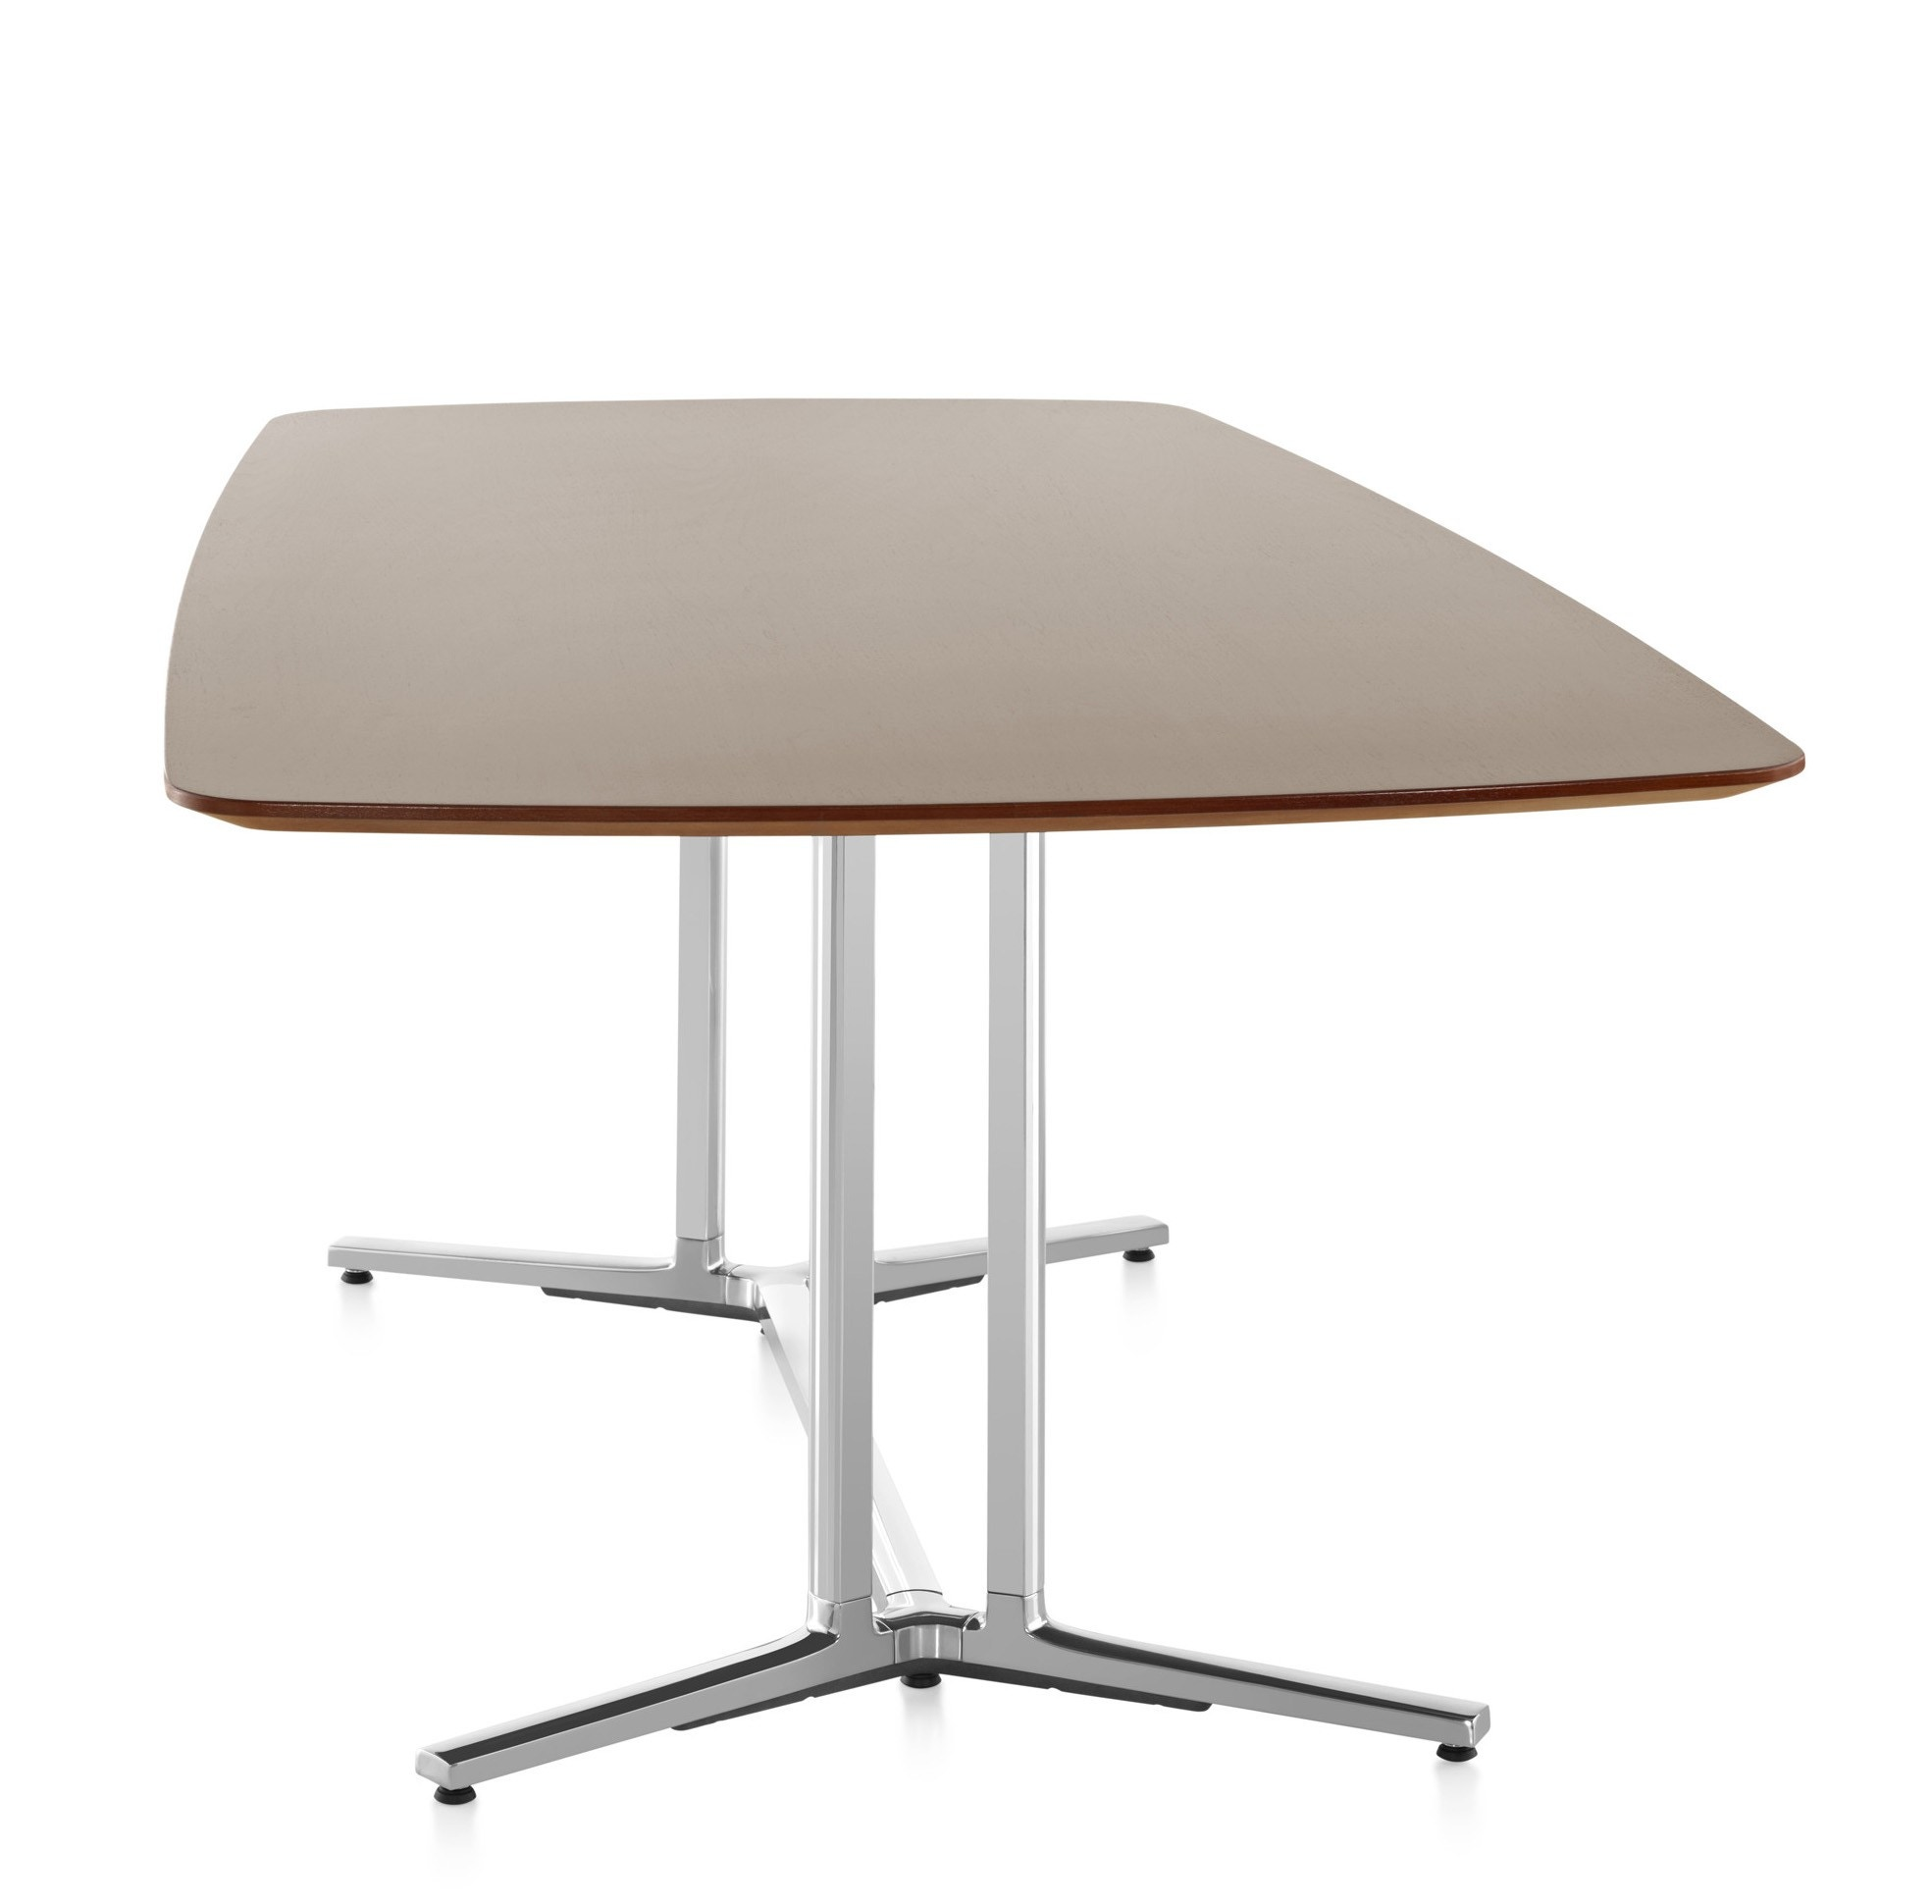 Herman miller everywhere table oval gr shop canada for Html table in table